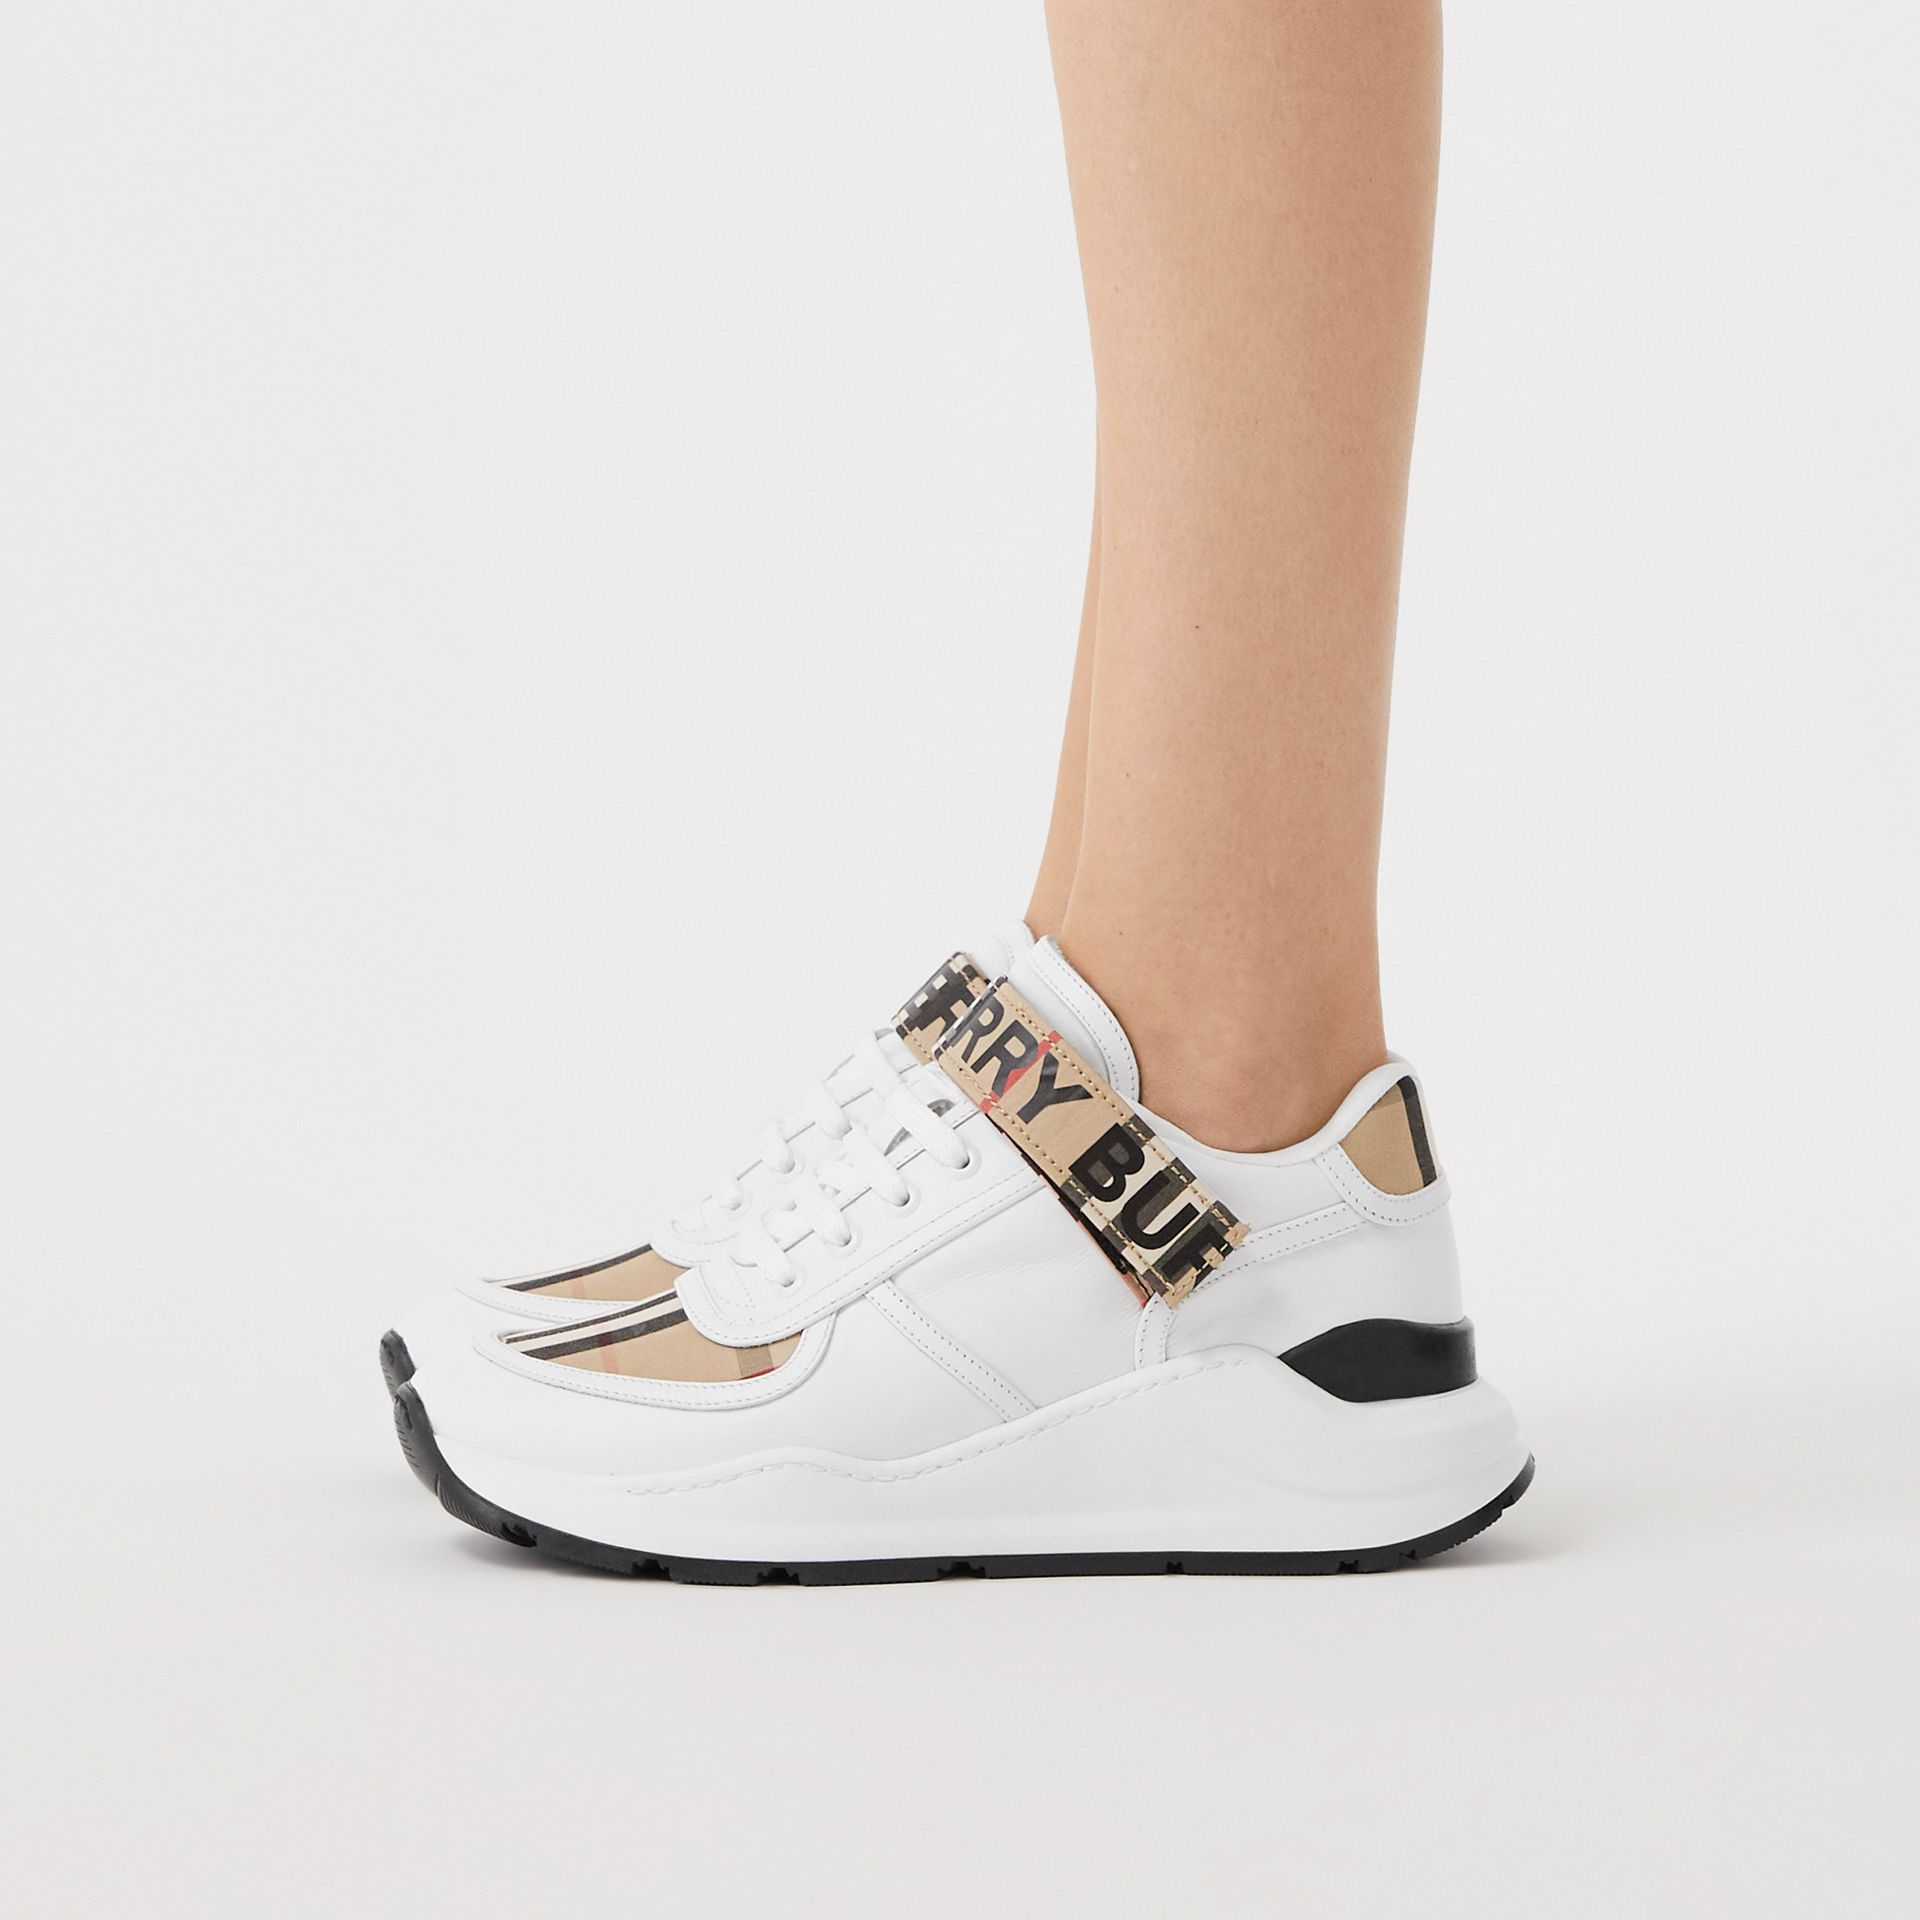 Logo Print Vintage Check and Leather Sneakers in Archive Beige - Women | Burberry - gallery image 2